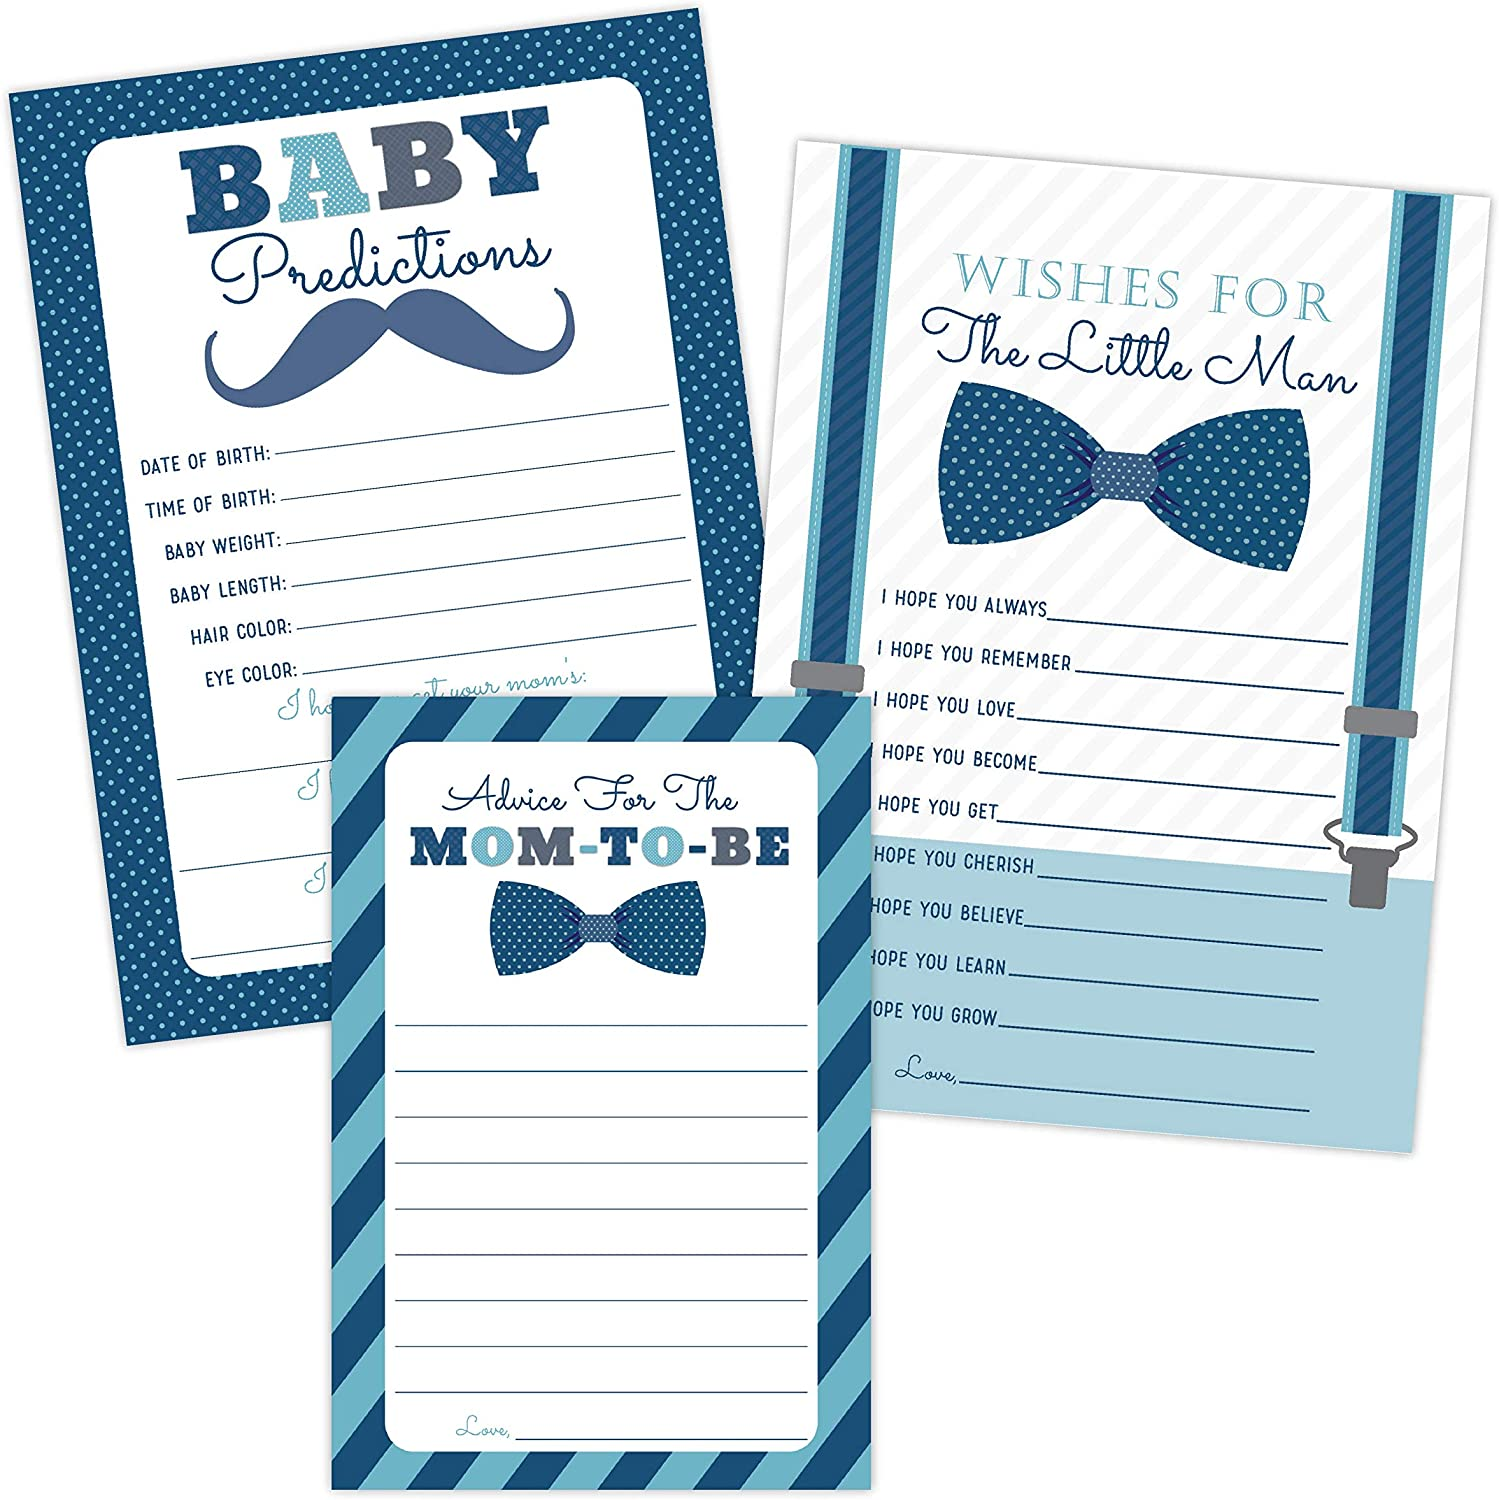 Little Man Baby Shower Games Predictions, Advice, and Wishes Card Set for Boy with Bow Tie Design